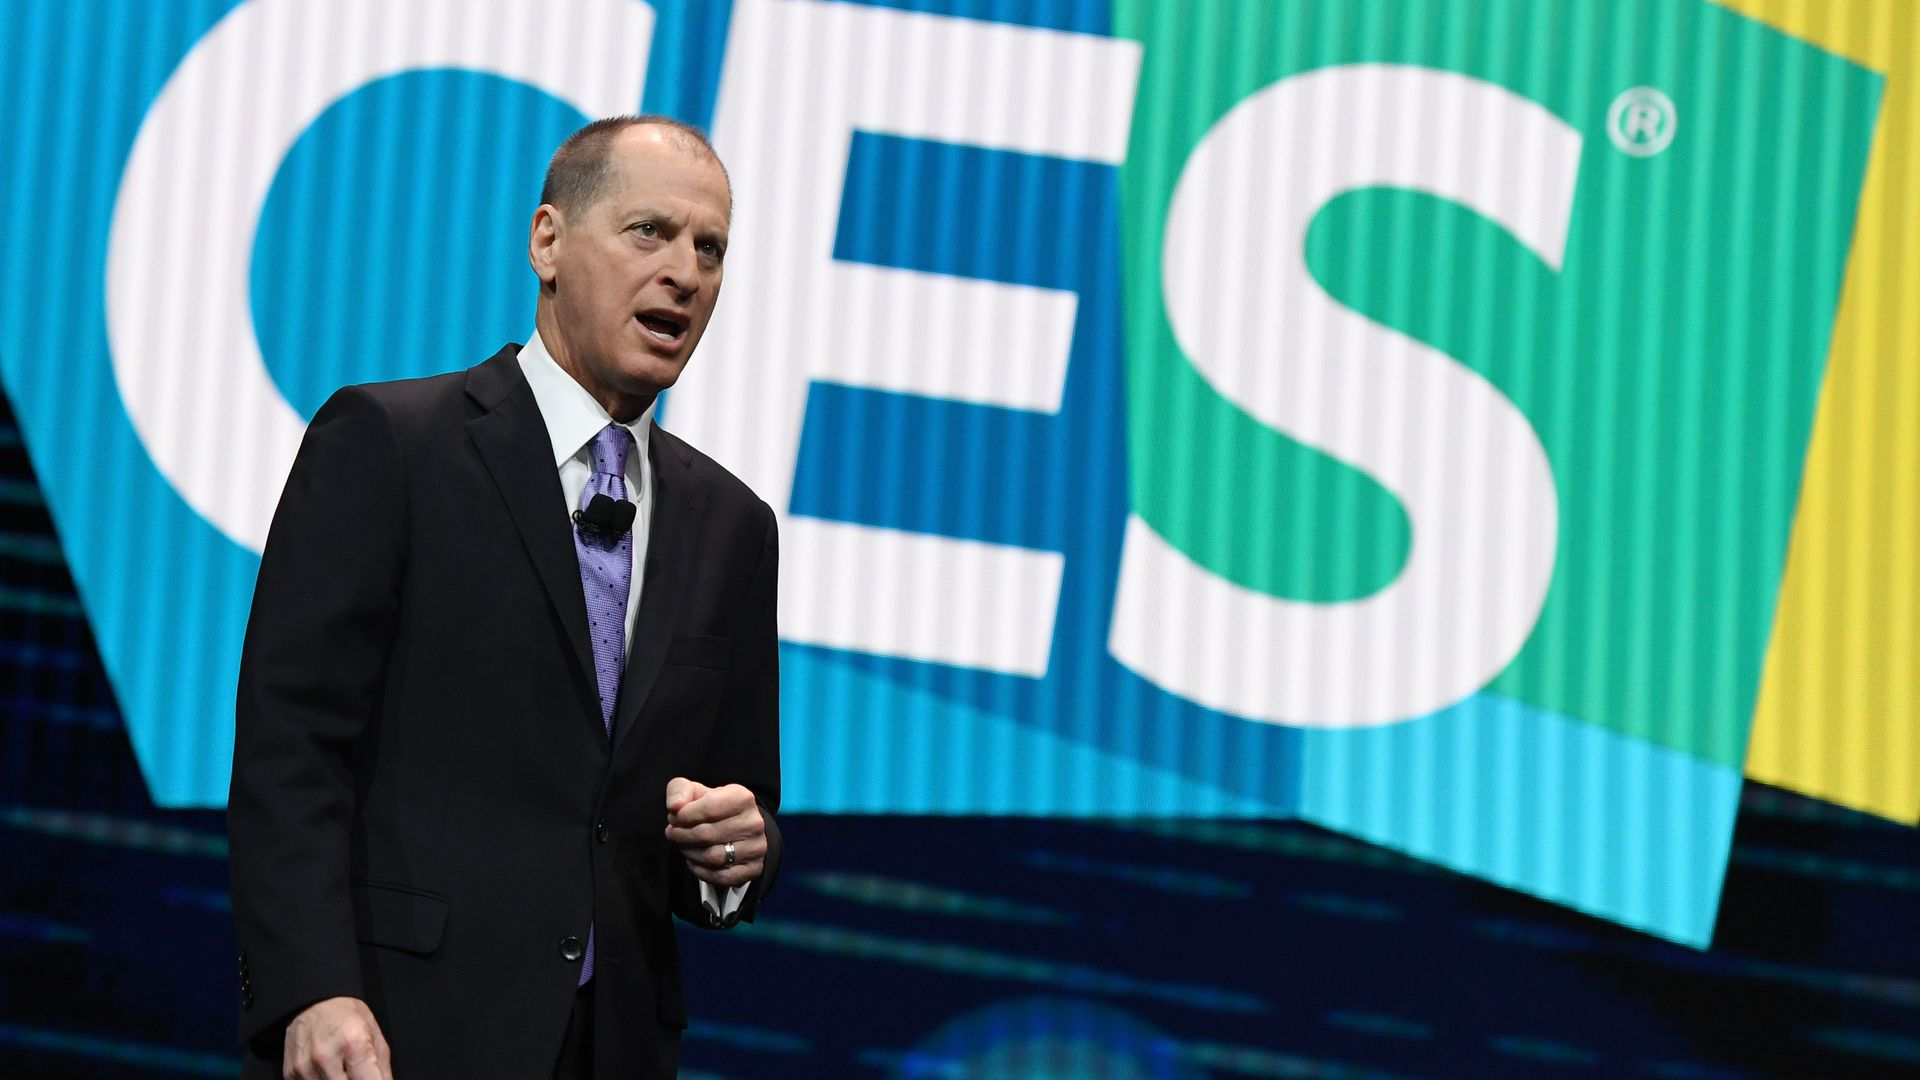 Gary Shapiro wears a suit on stage, in front of a CES logo